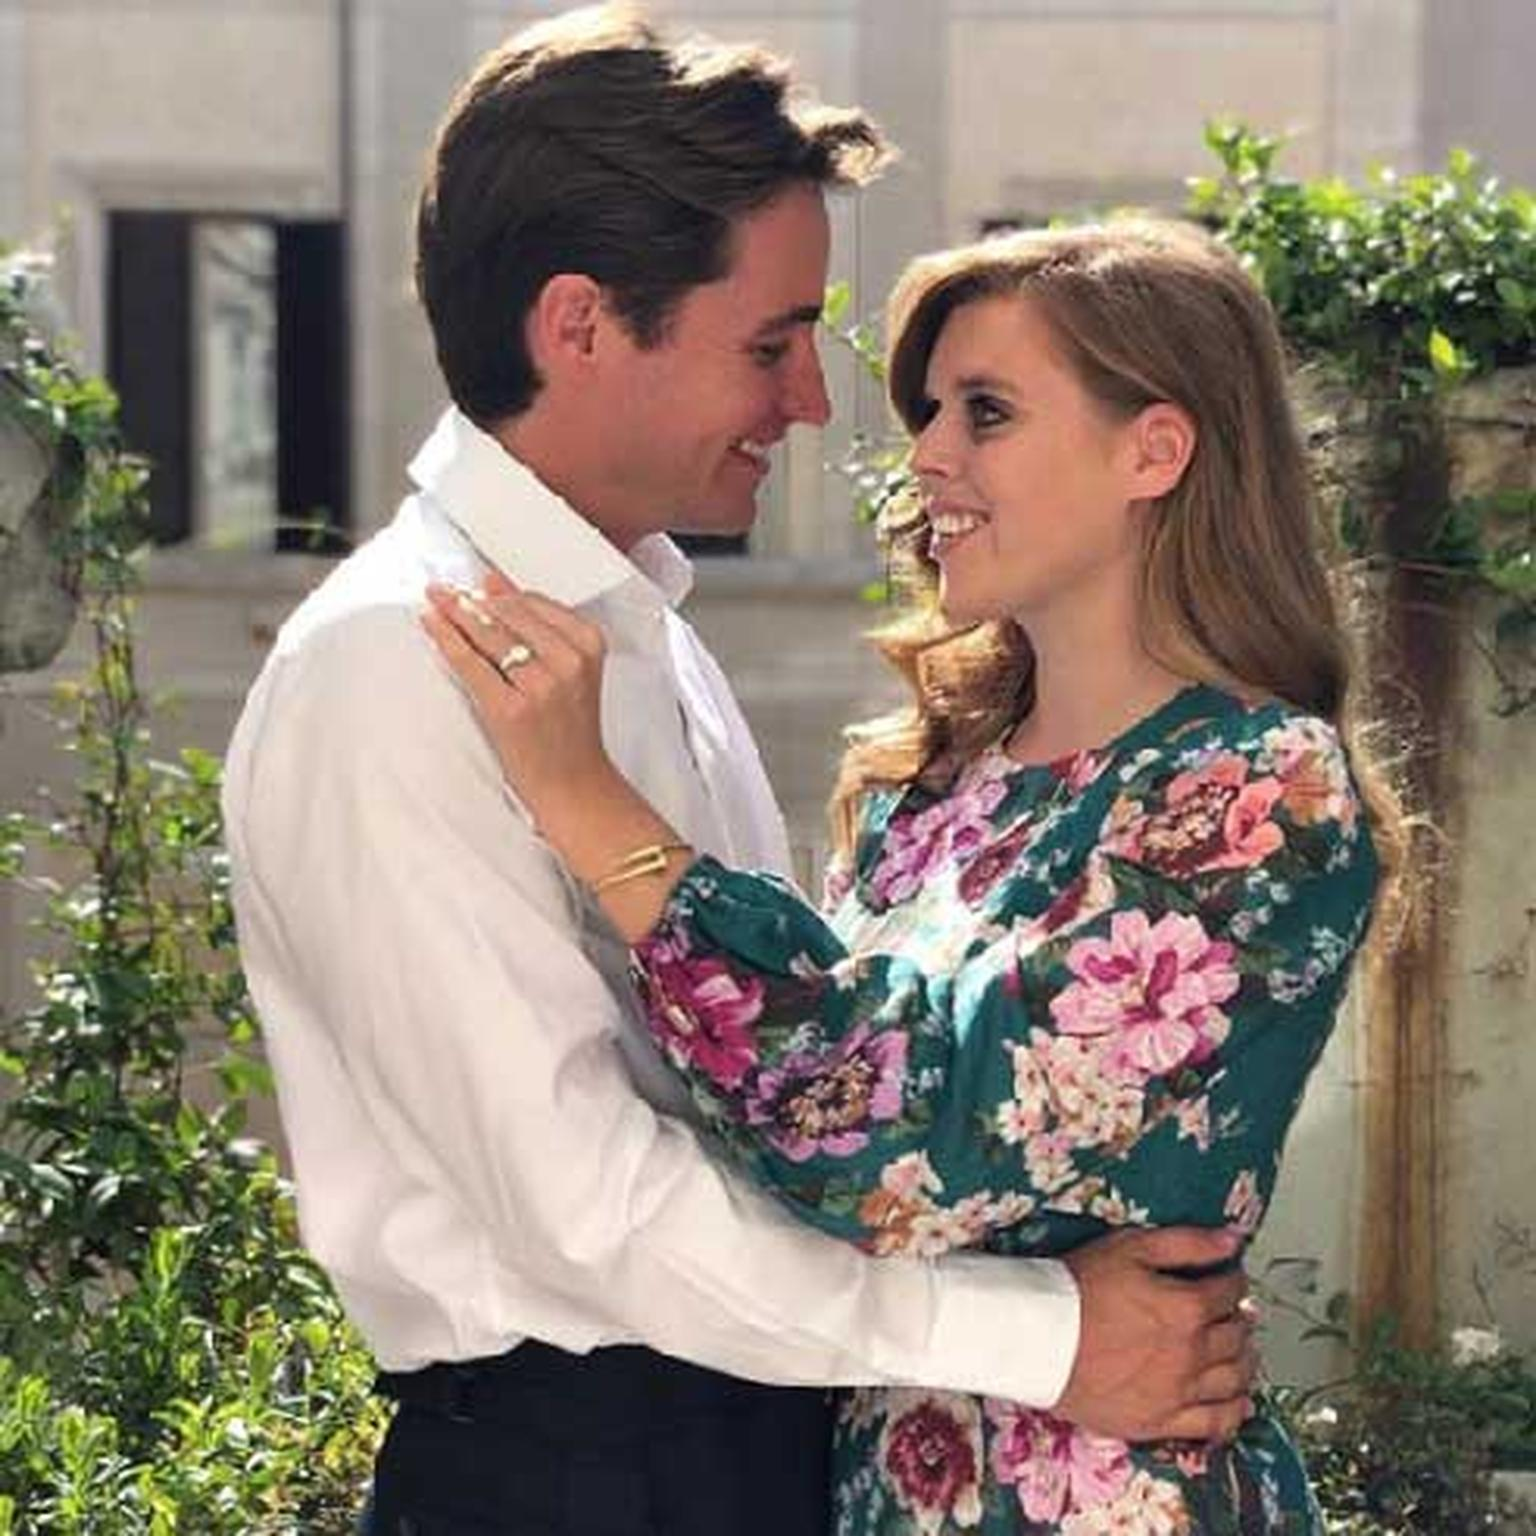 Princess Beatrice and Edoardo Mapelli Mozzi reveal engagement ring